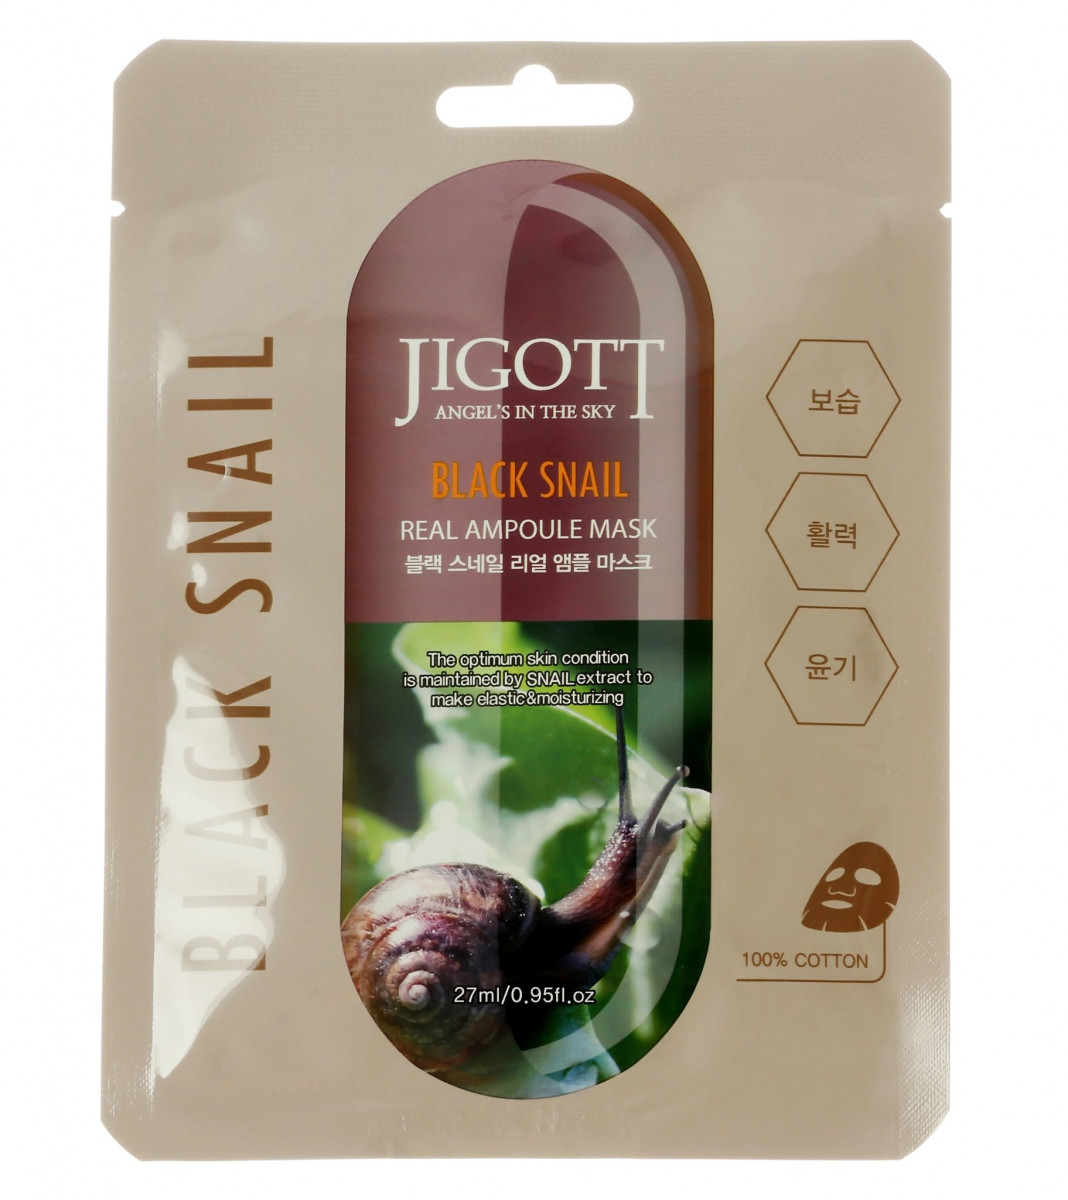 Black Snail Real Ampoule Mask [Jigott]